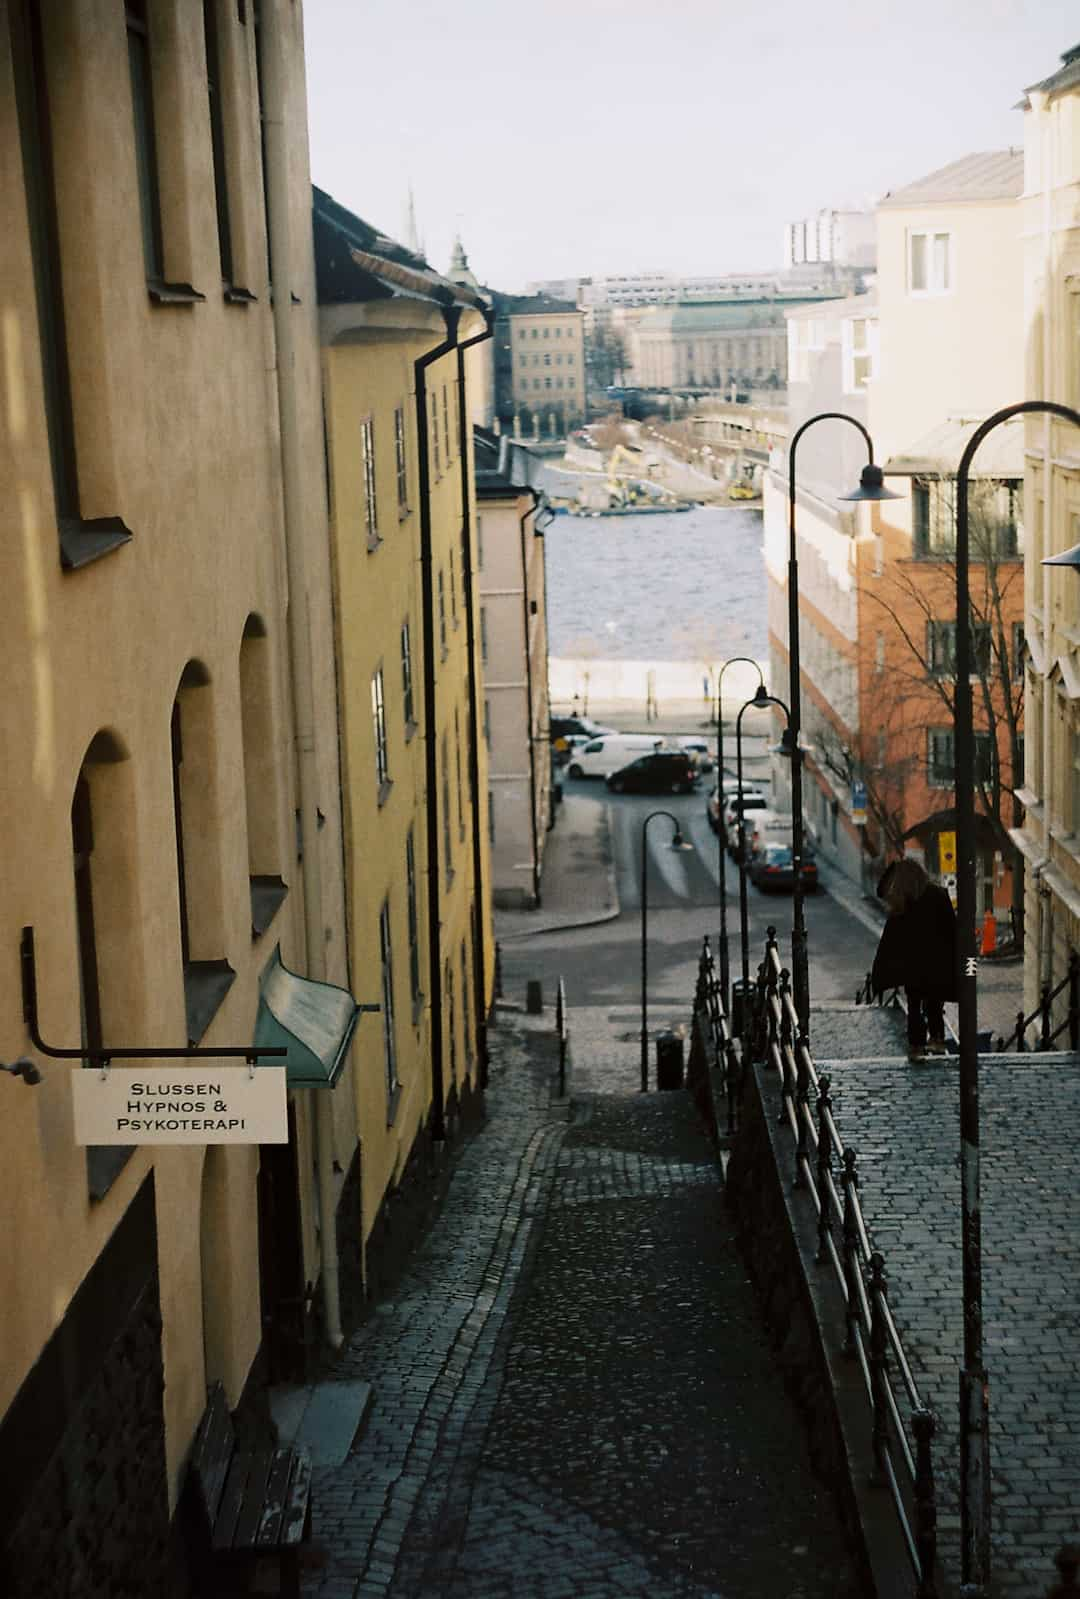 Stockholm 35mm Film Photography Travel Story by Marta Karcz on Shoot It With Film